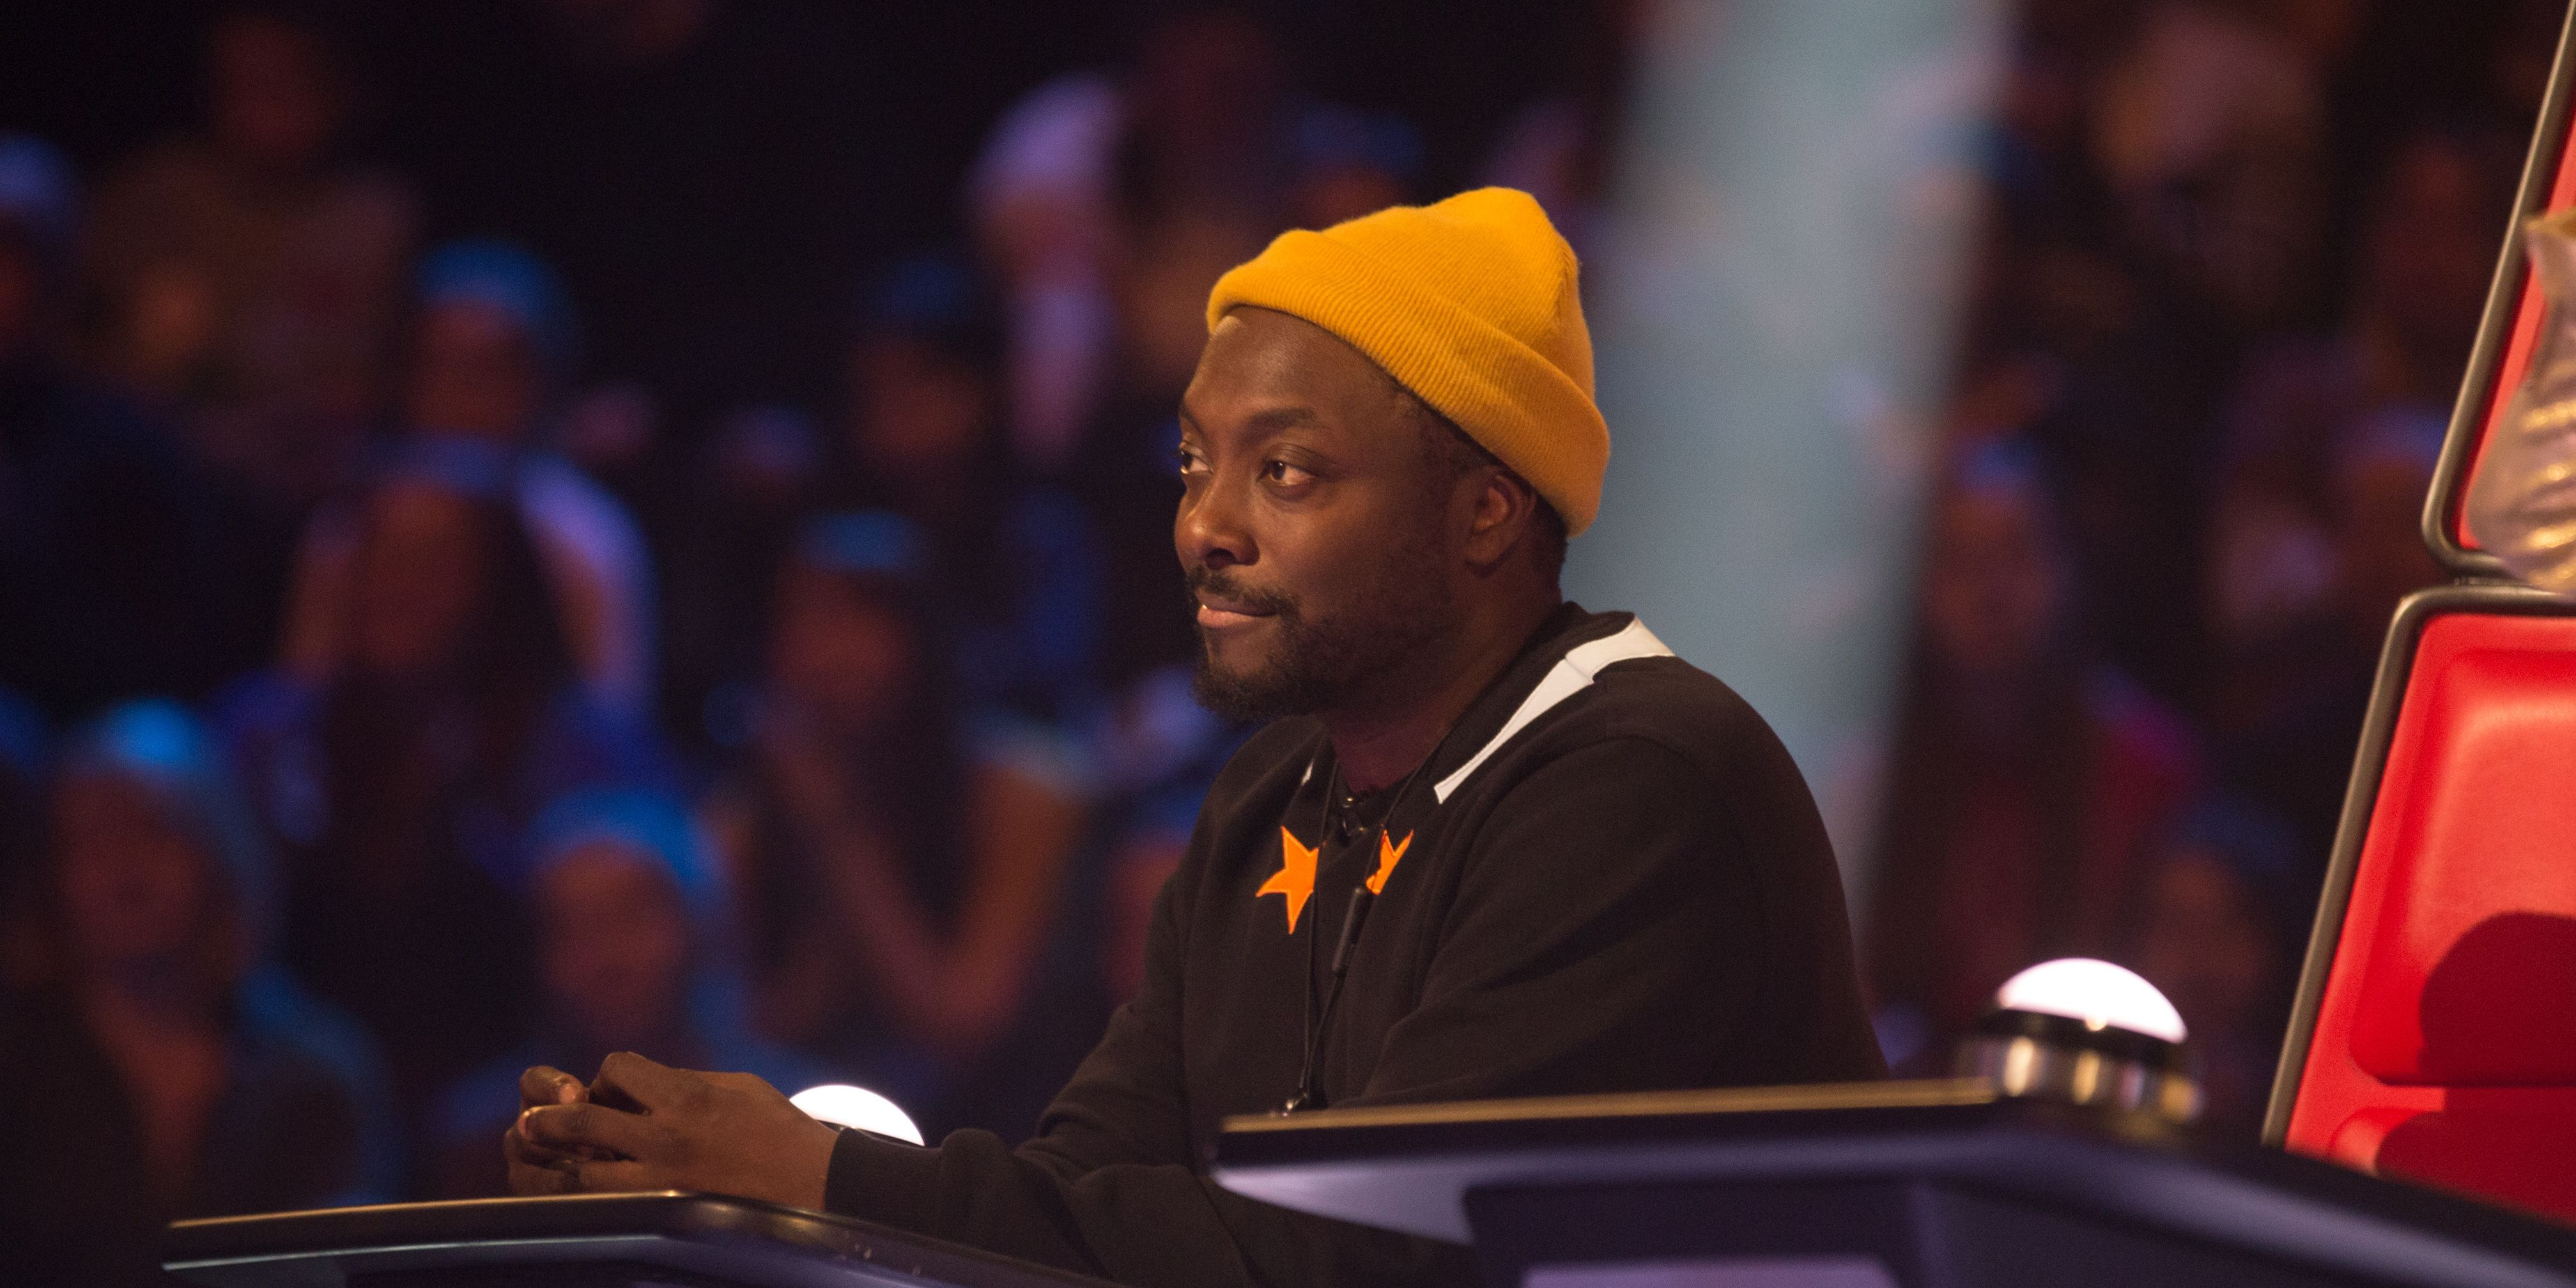 will.i.am on The Voice Kids episode 1